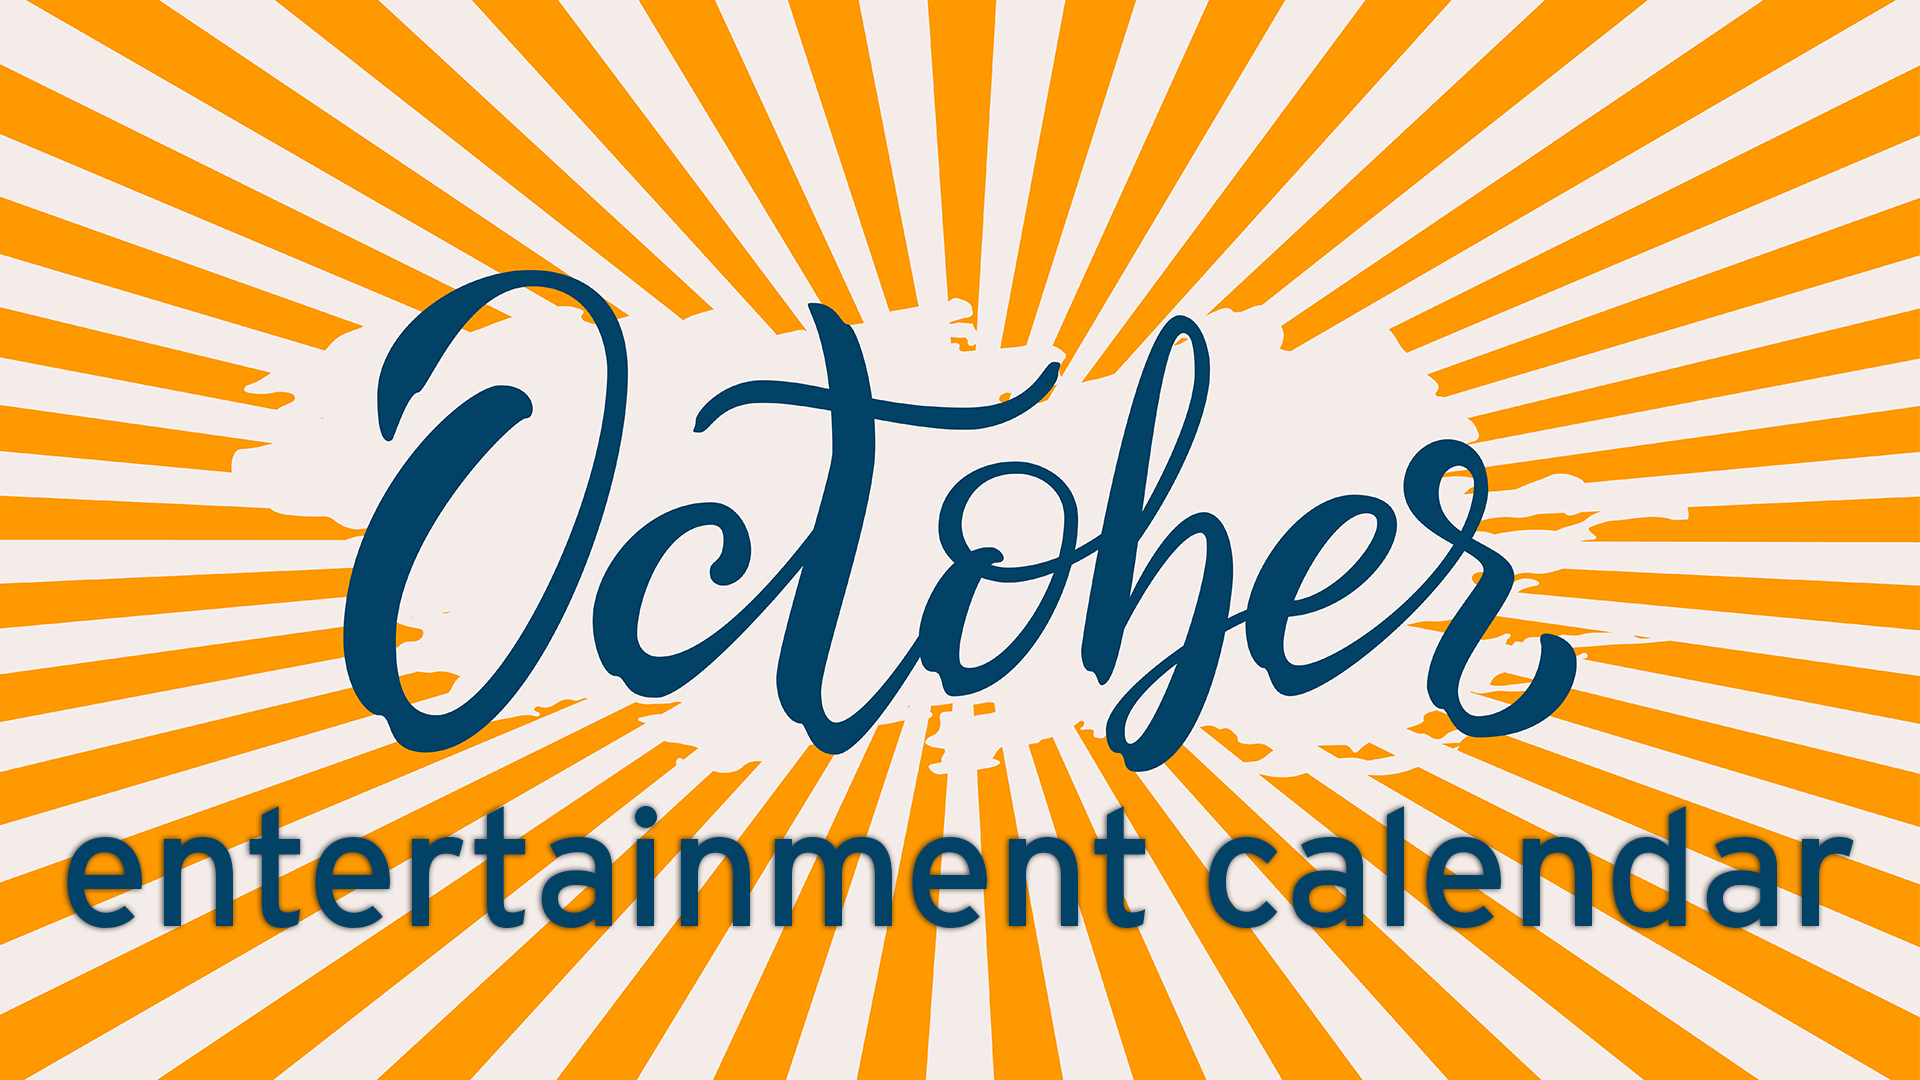 October entertainment calendar: Halloween, Old Dominion, 'Jersey Boys,' Chad Prather, more